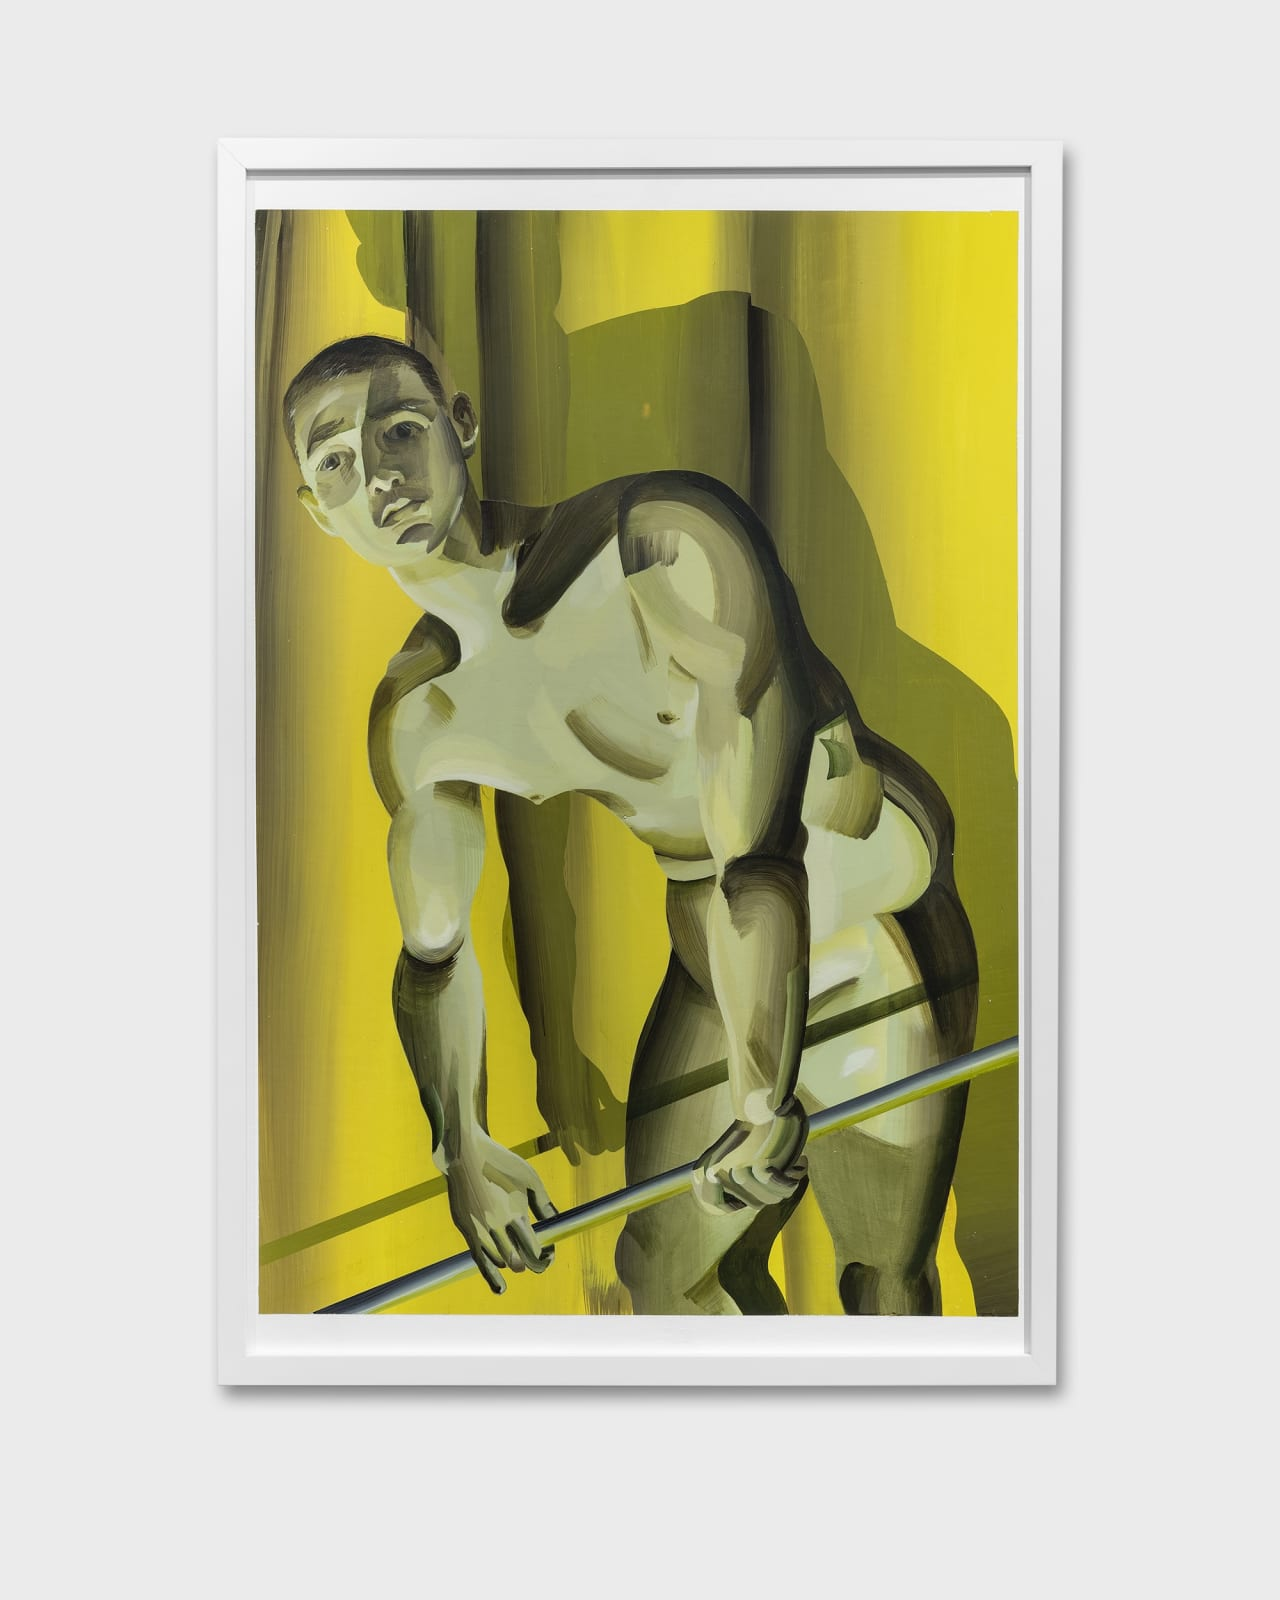 Kyle Dunn BOY ON YELLOW CURTAIN 2019